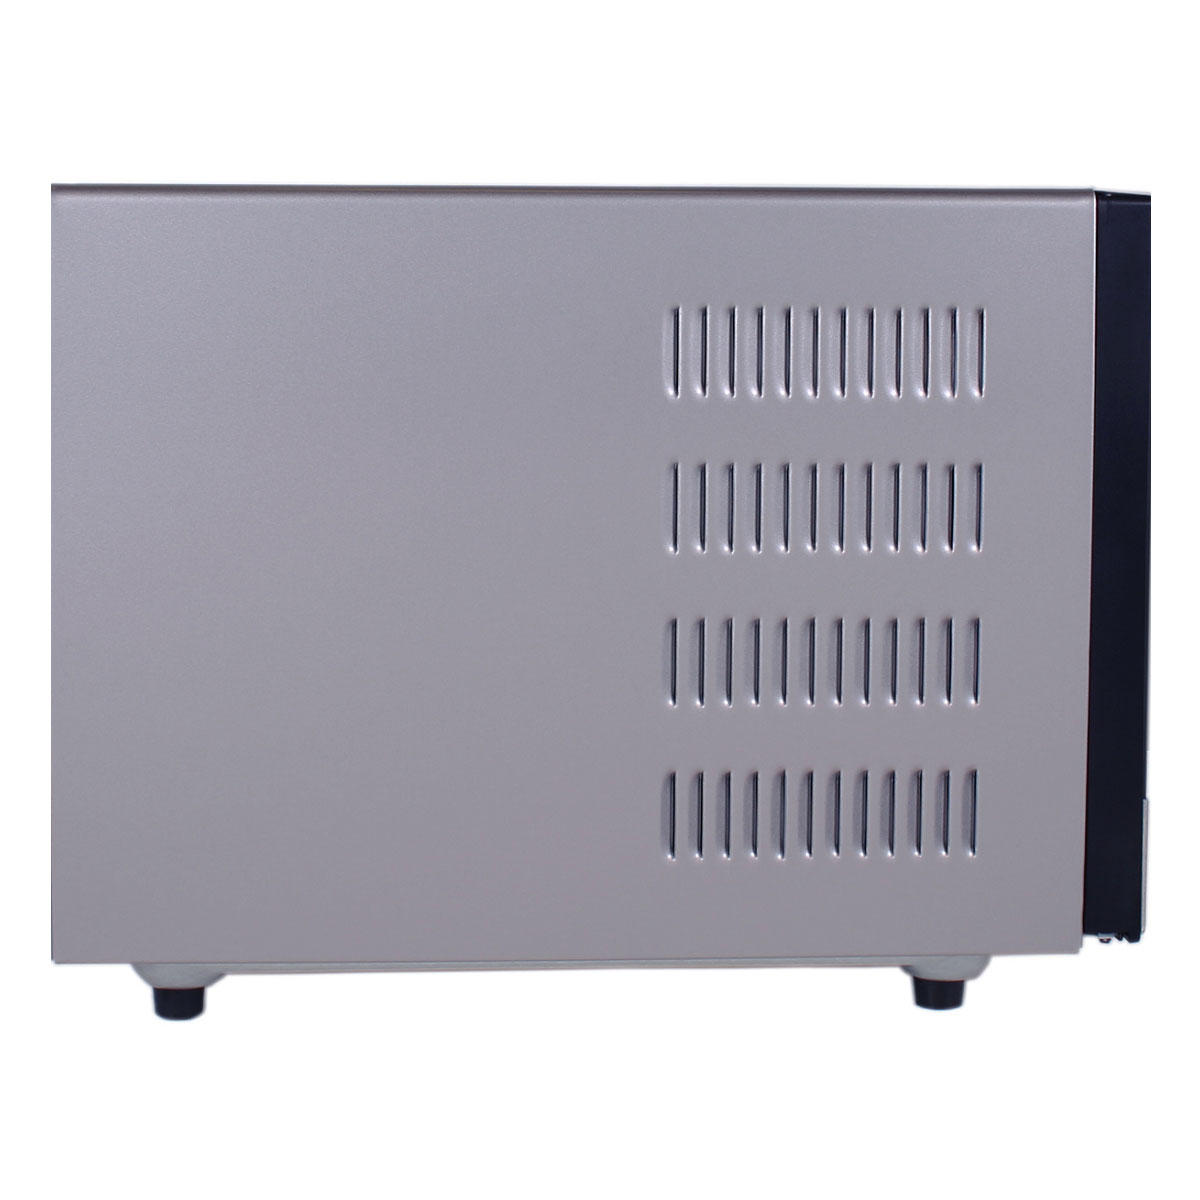 Sharp R395YS 39Litres Stainless Steel Inverter Microwave 29499